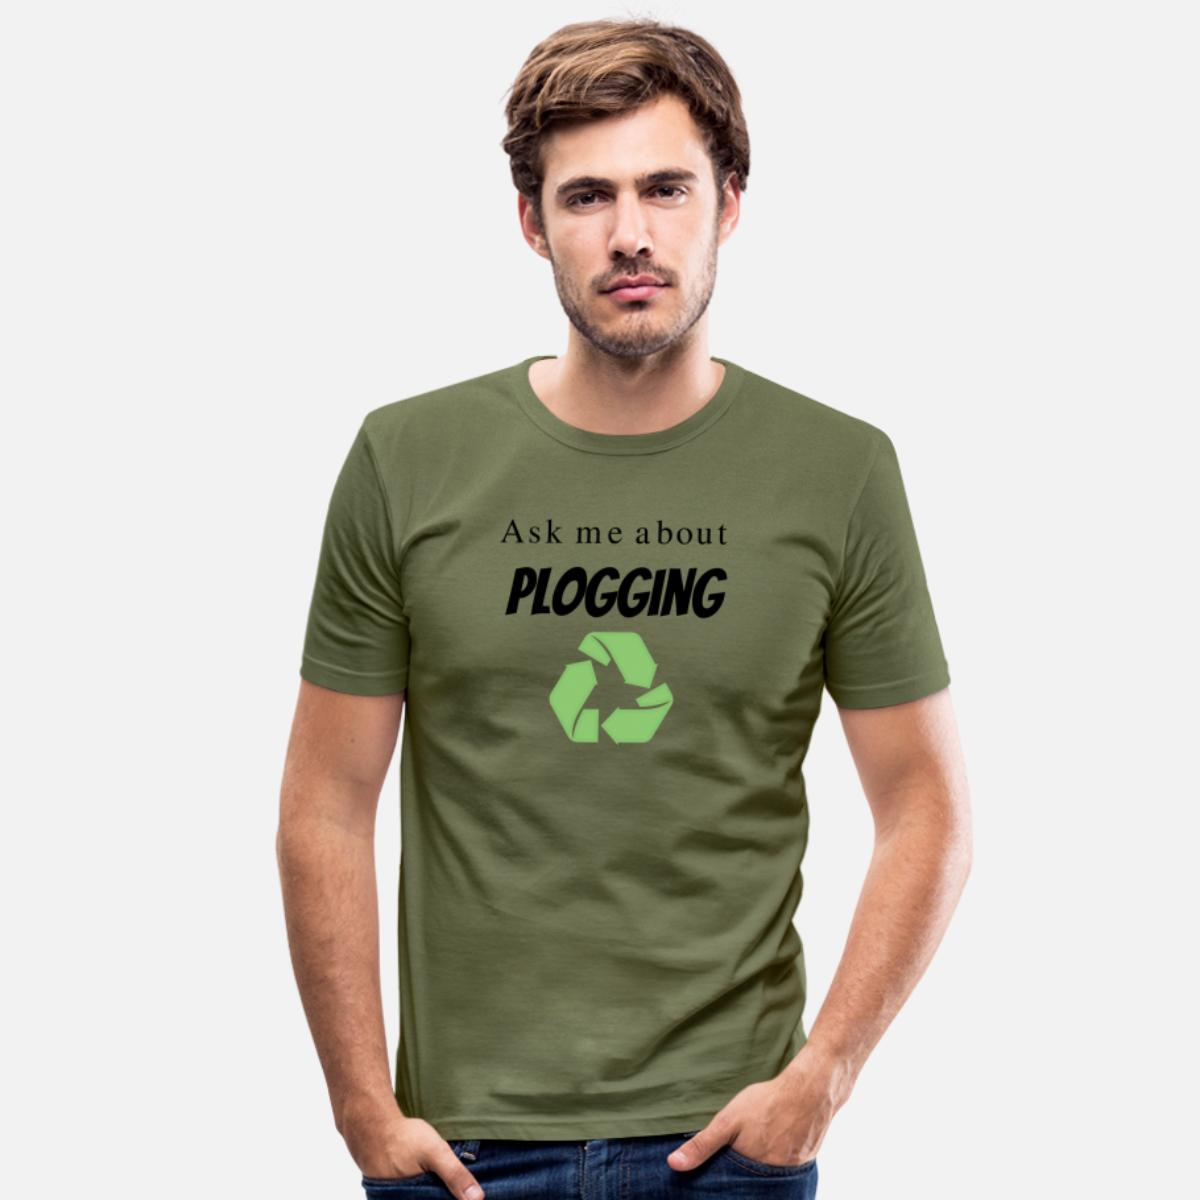 Männer Slim Fit T-Shirt Ask me about Plogging - Frag mich nach Plogging von Christine aka stine1 auf Spreadshirt